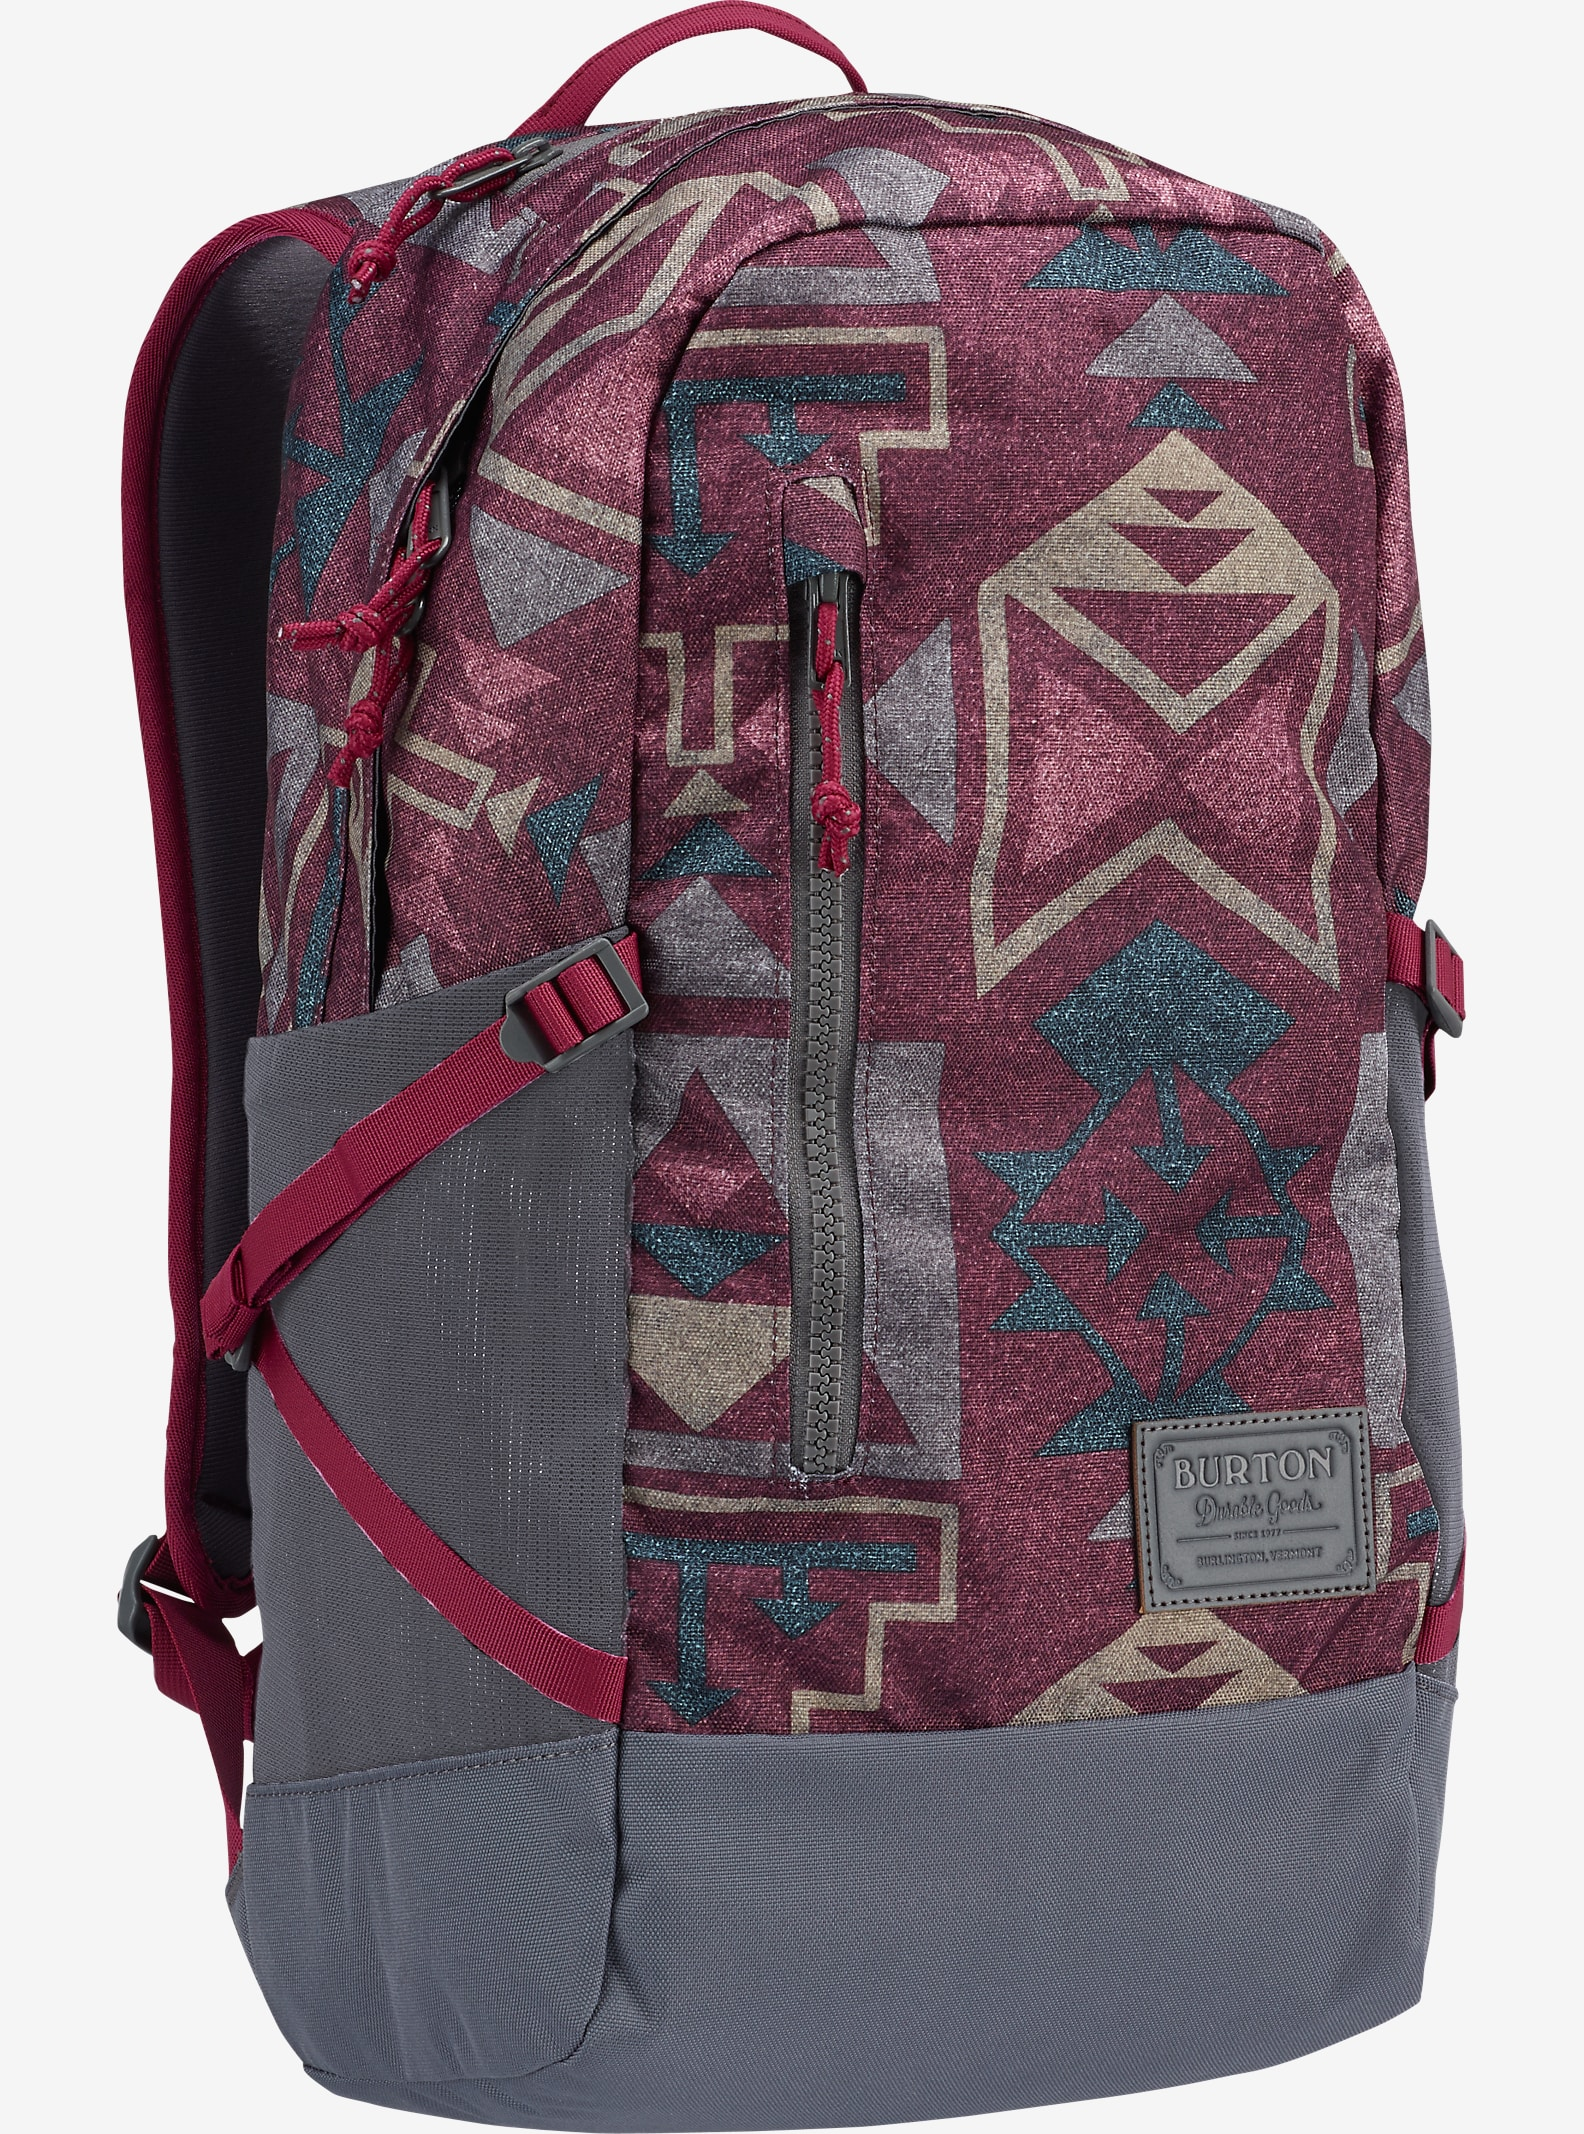 Burton Prospect Backpack shown in Canyon Print